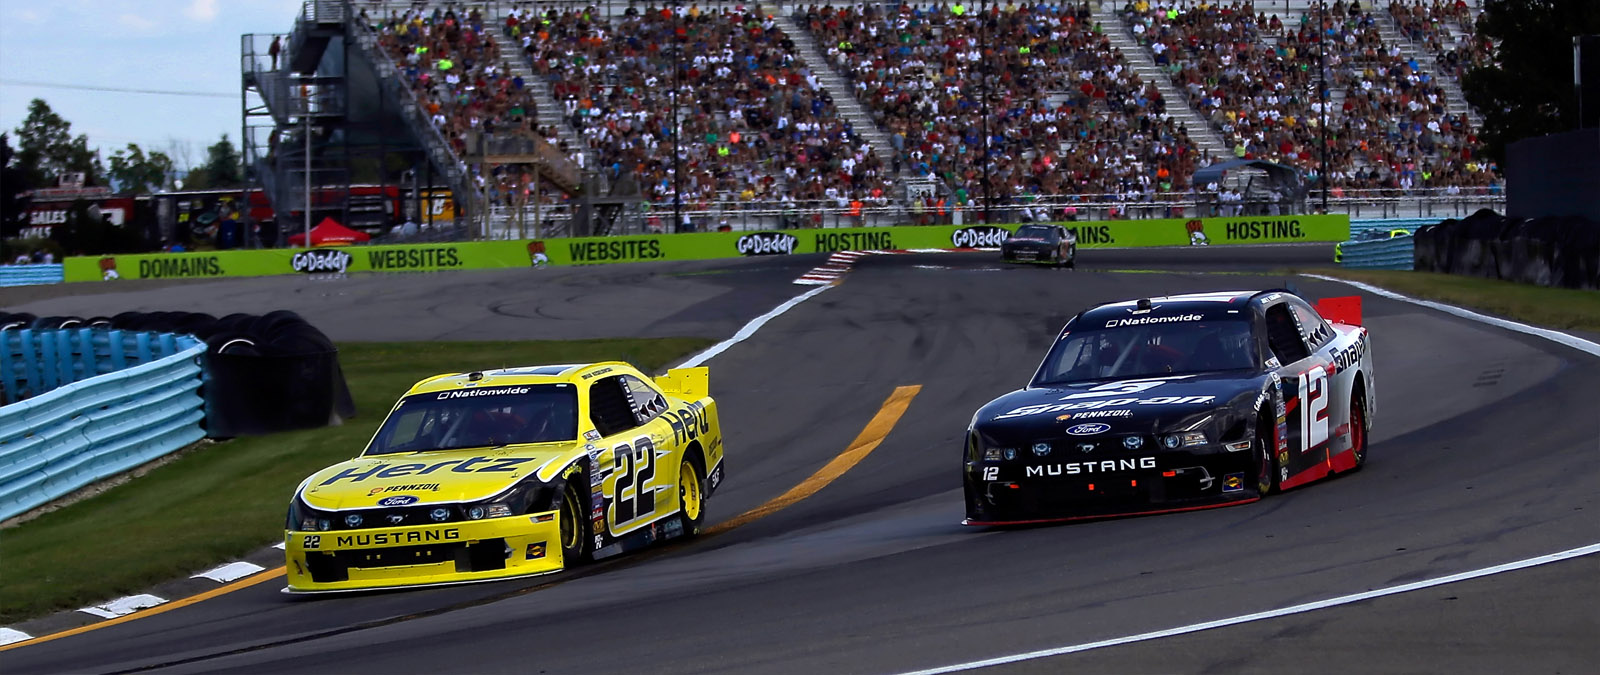 Logano and Keselowski Racing At the Glen